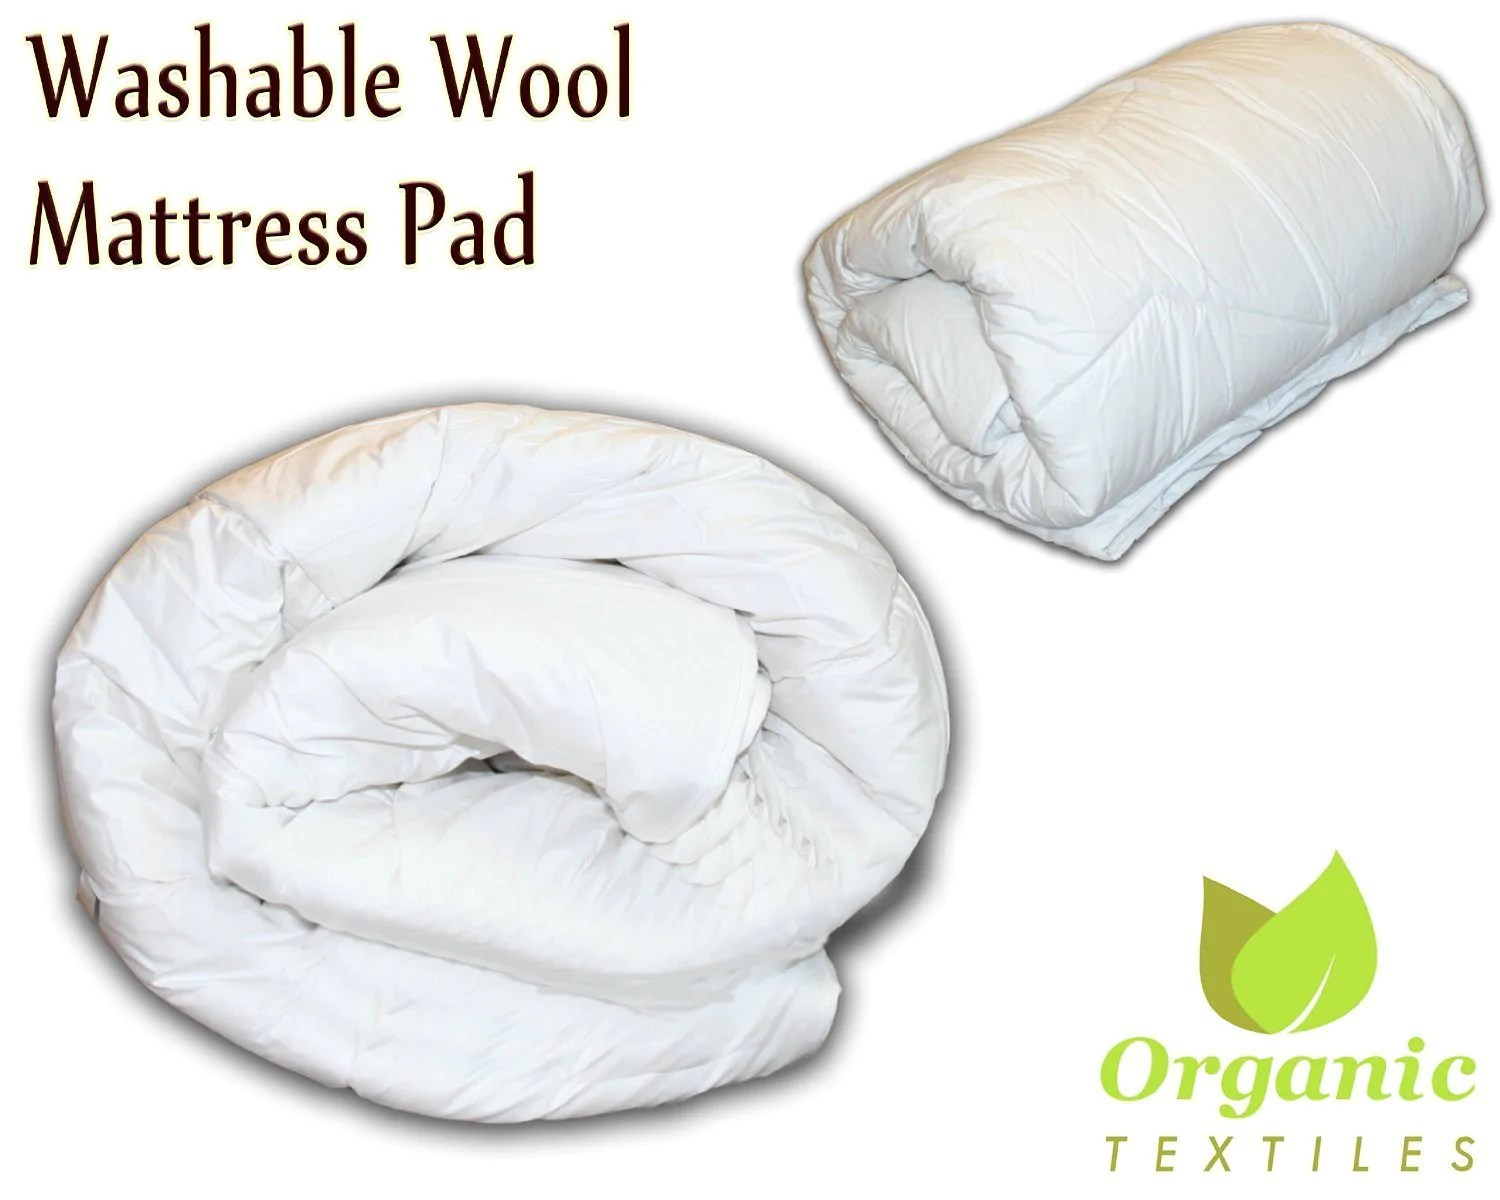 Wool Mattress Pad Reviews Washed Premium Wool Mattress Pad